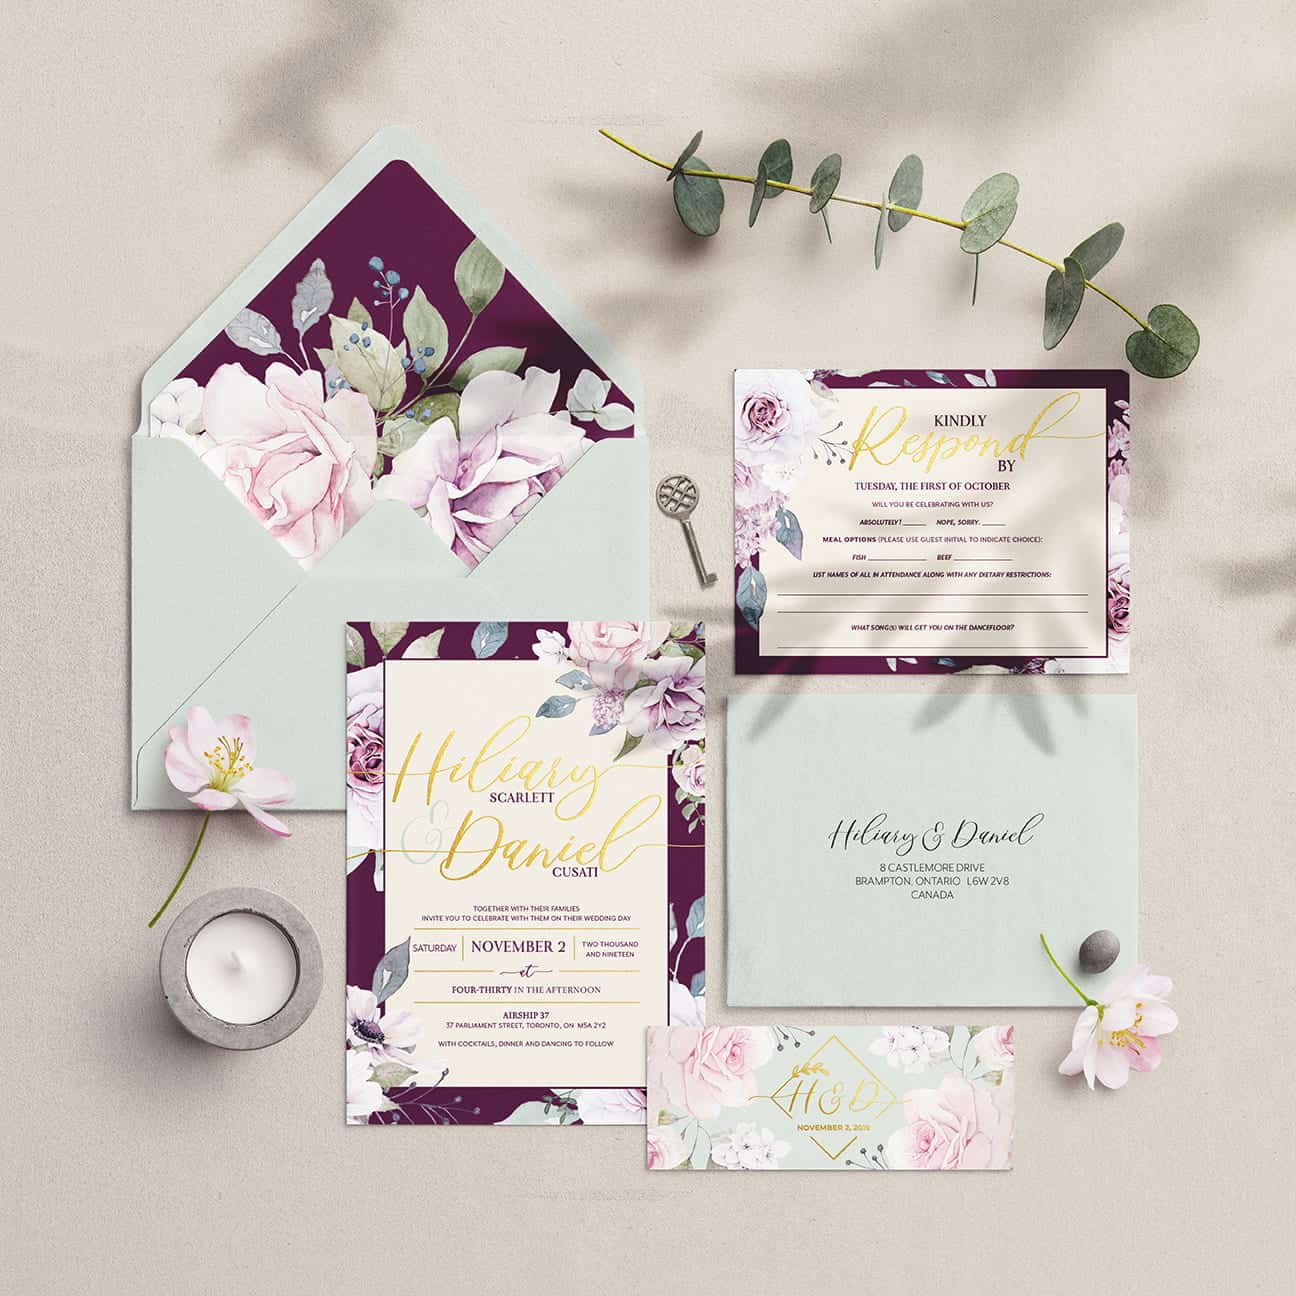 Toronto Wedding Planner - Stationery & Invitation